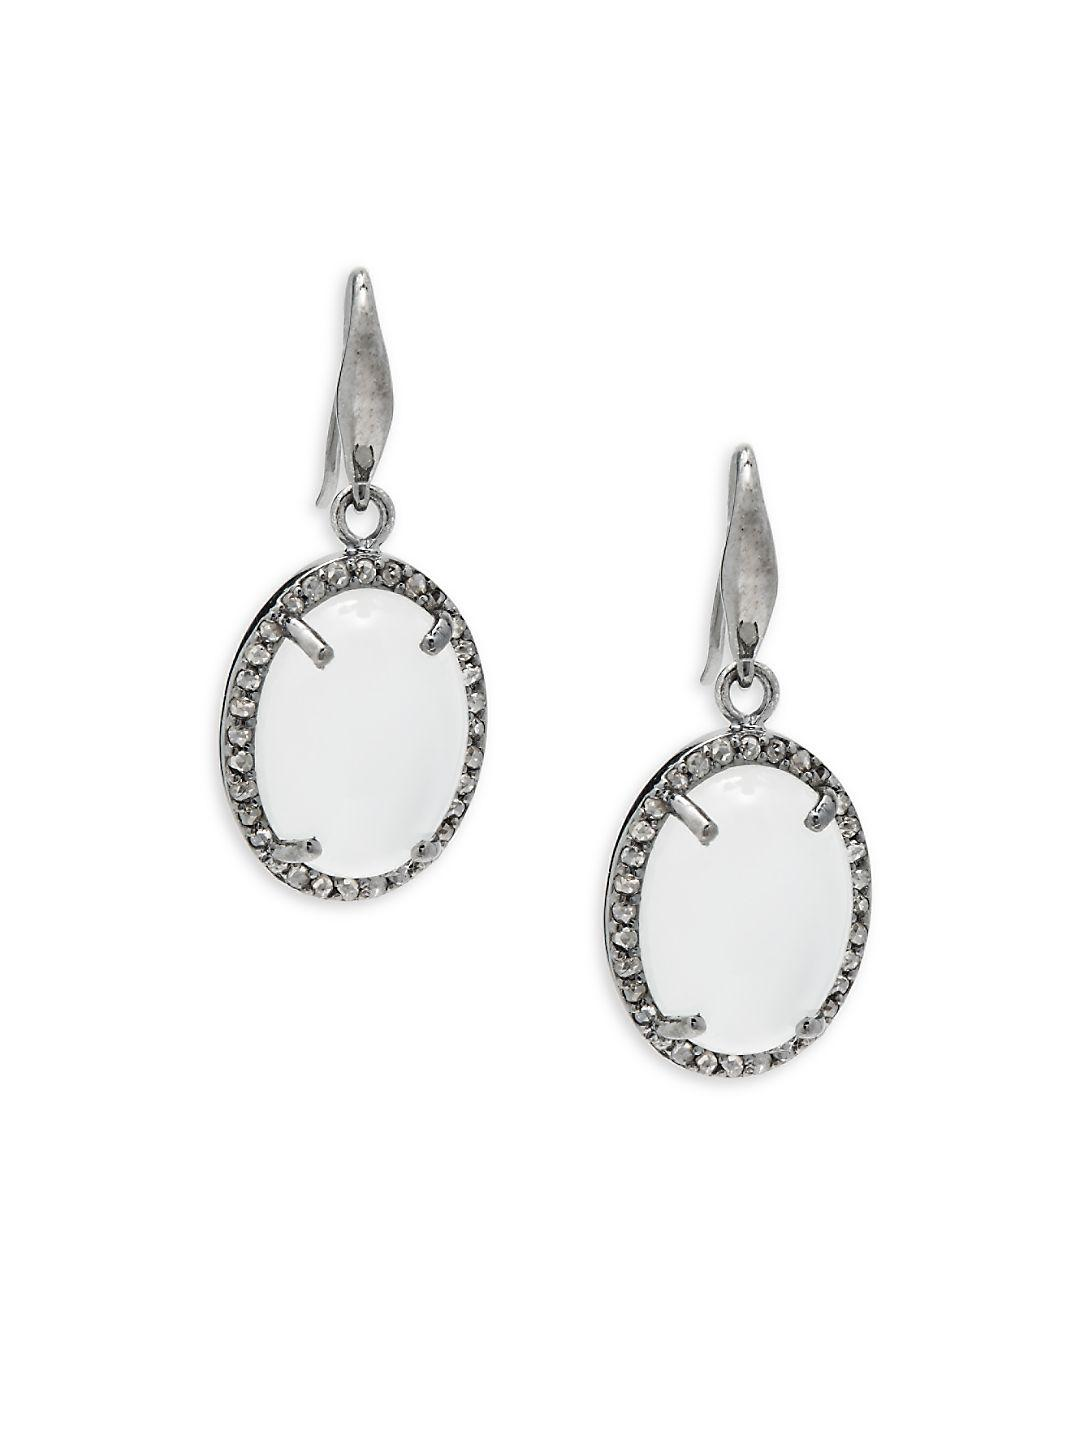 Bavna Black Diamond & Moonstone Hoop Drop Earrings iWtrXm0